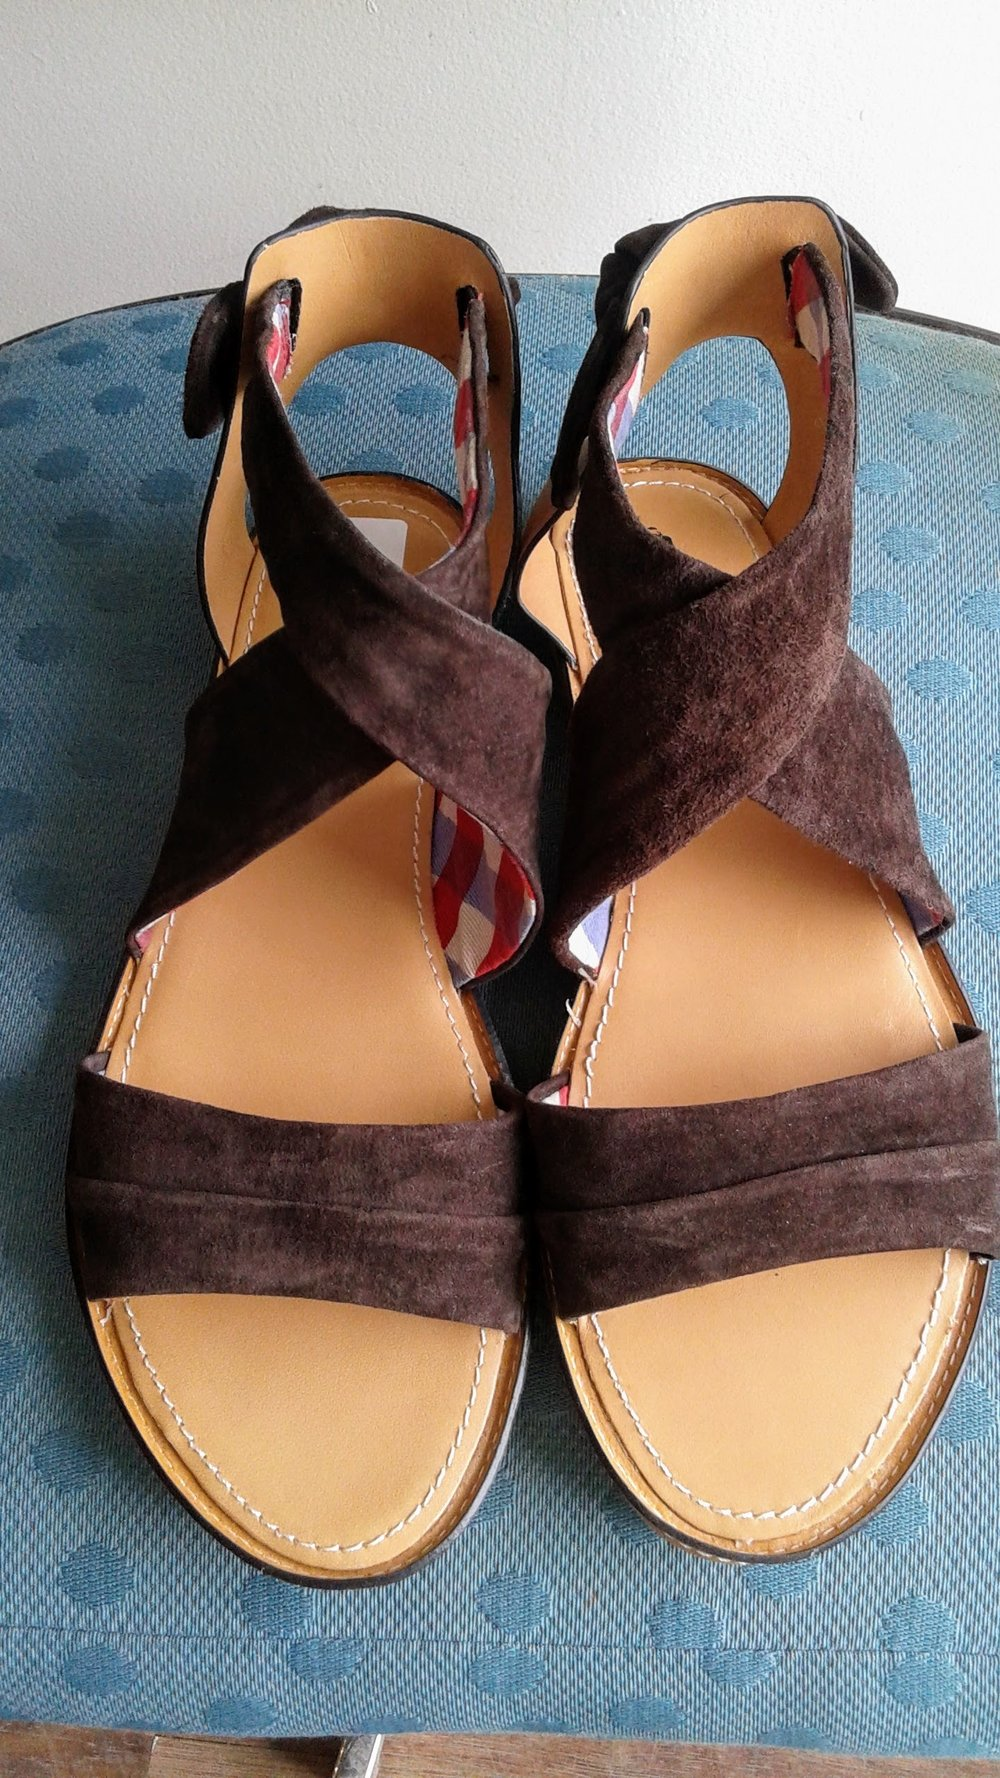 Hush Puppies sandals; S9, $32